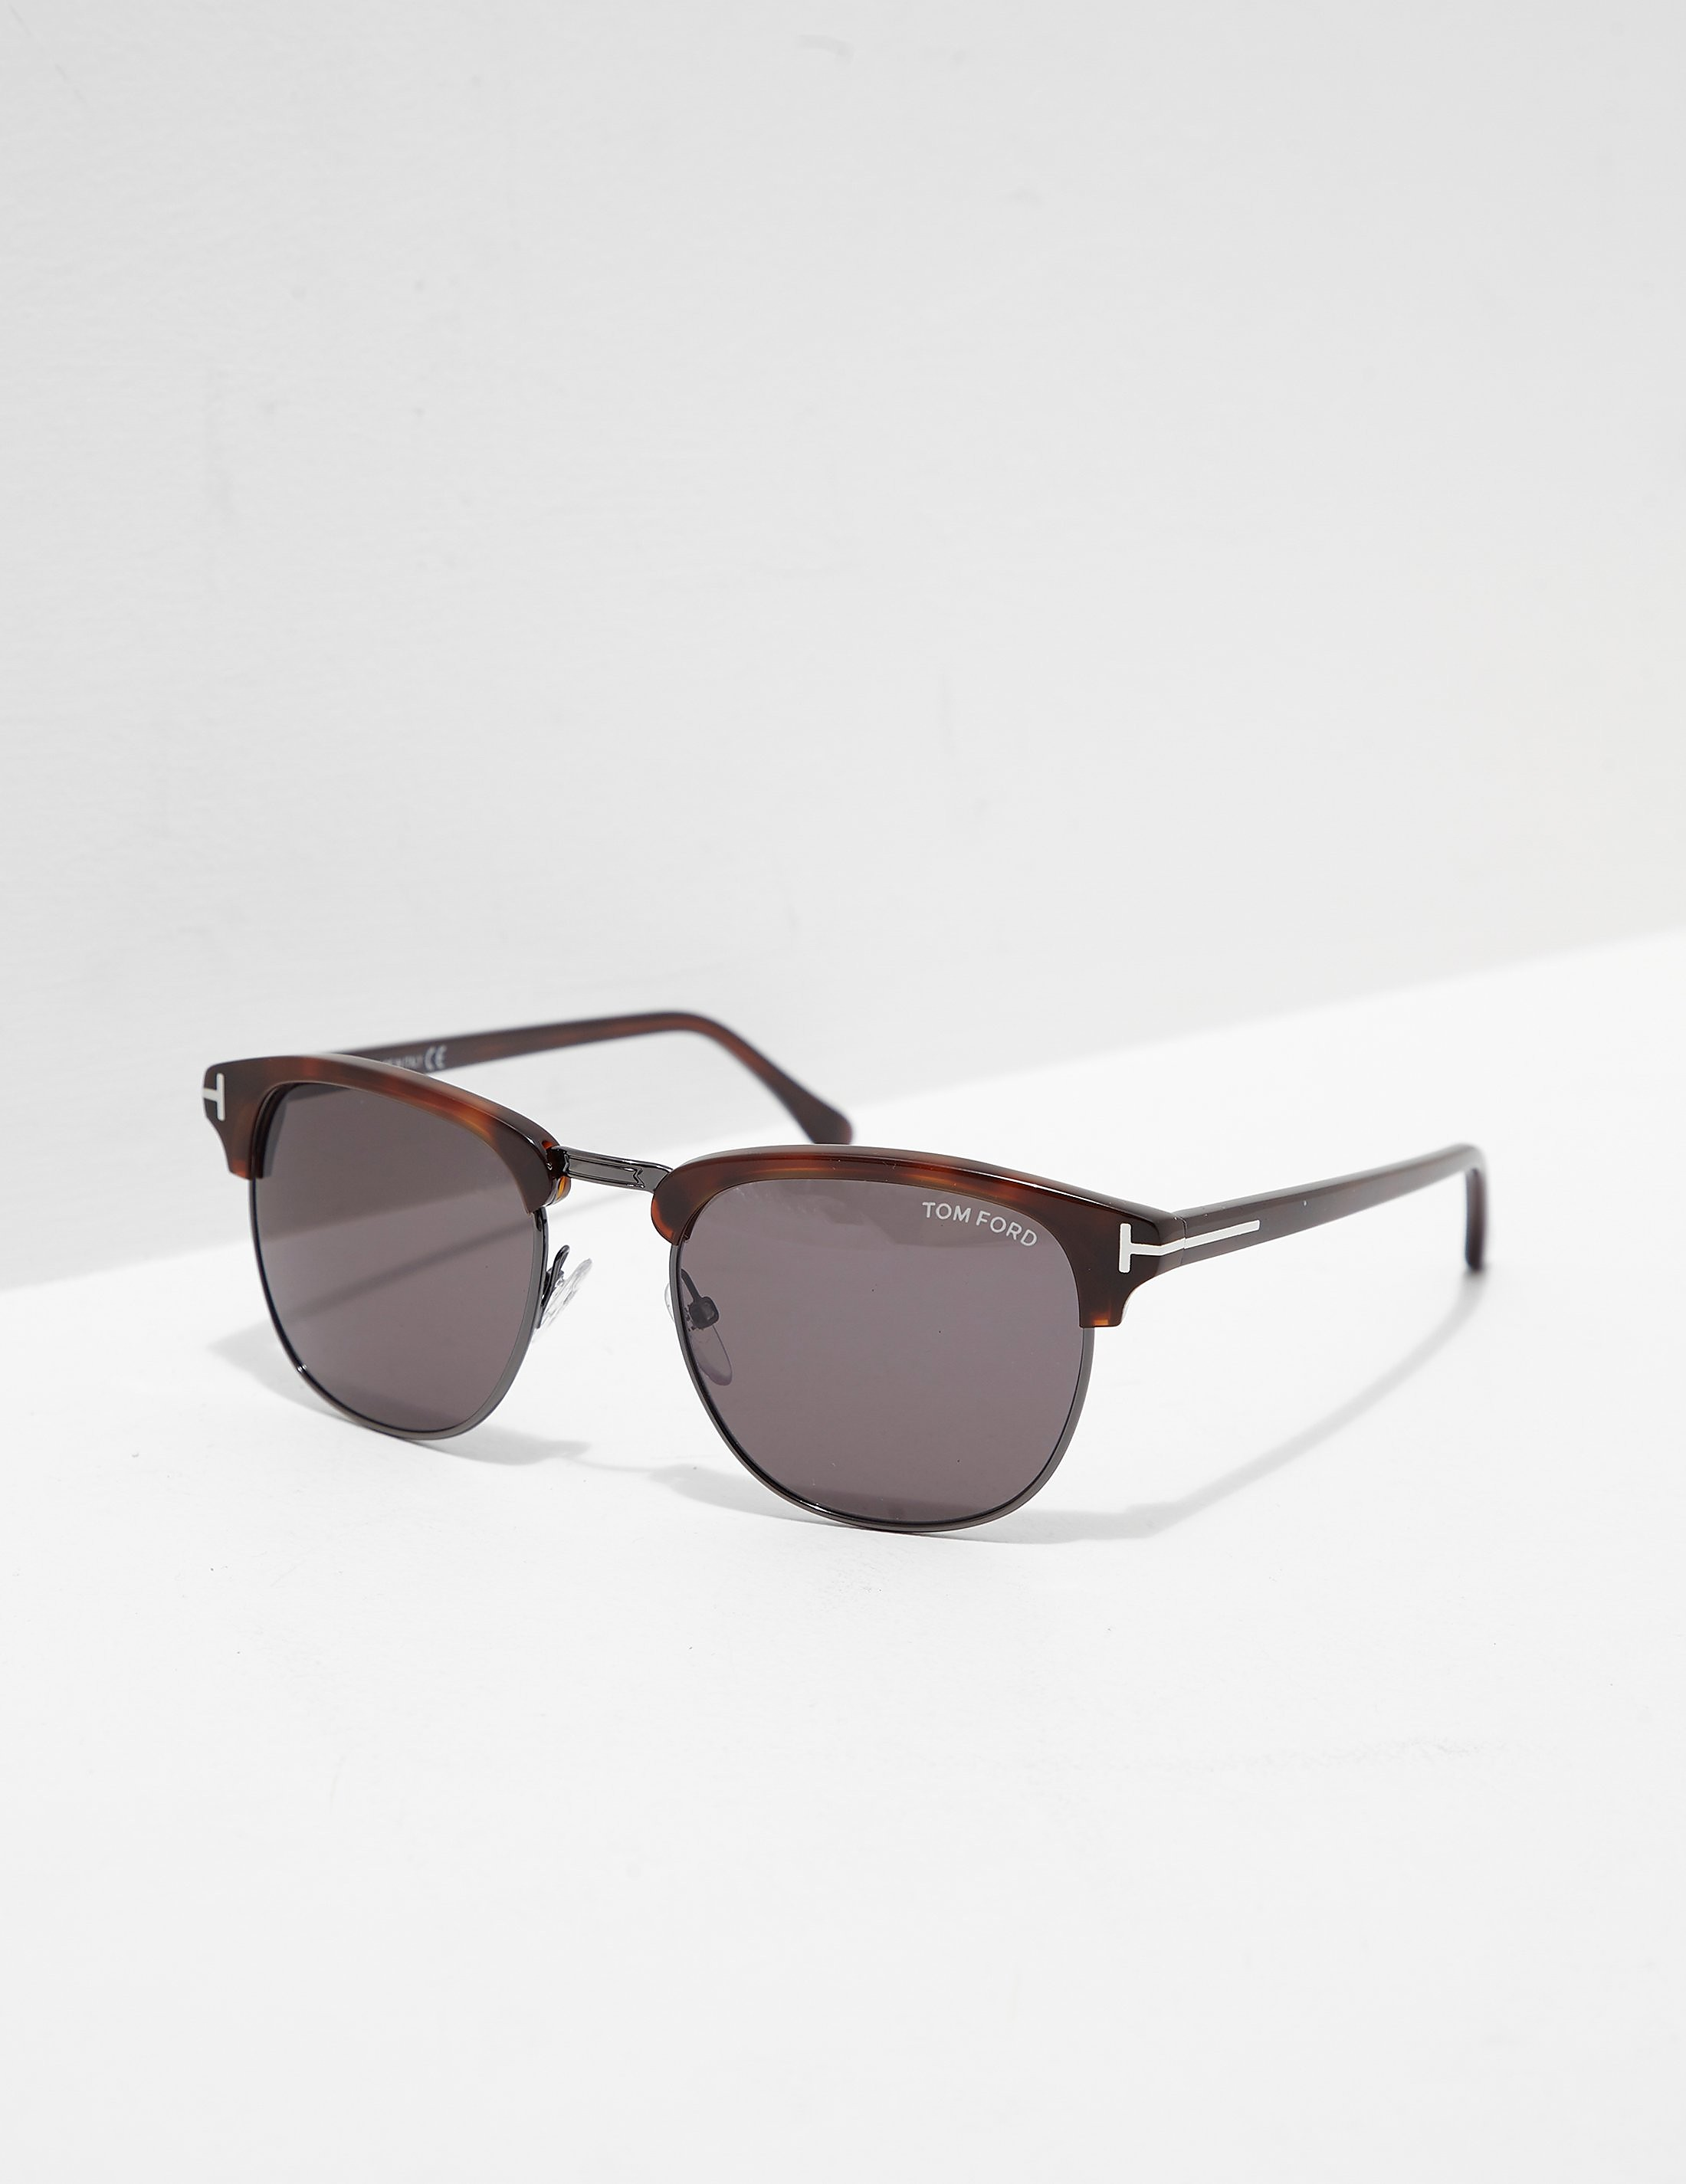 TOM FORD Henry Sunglasses